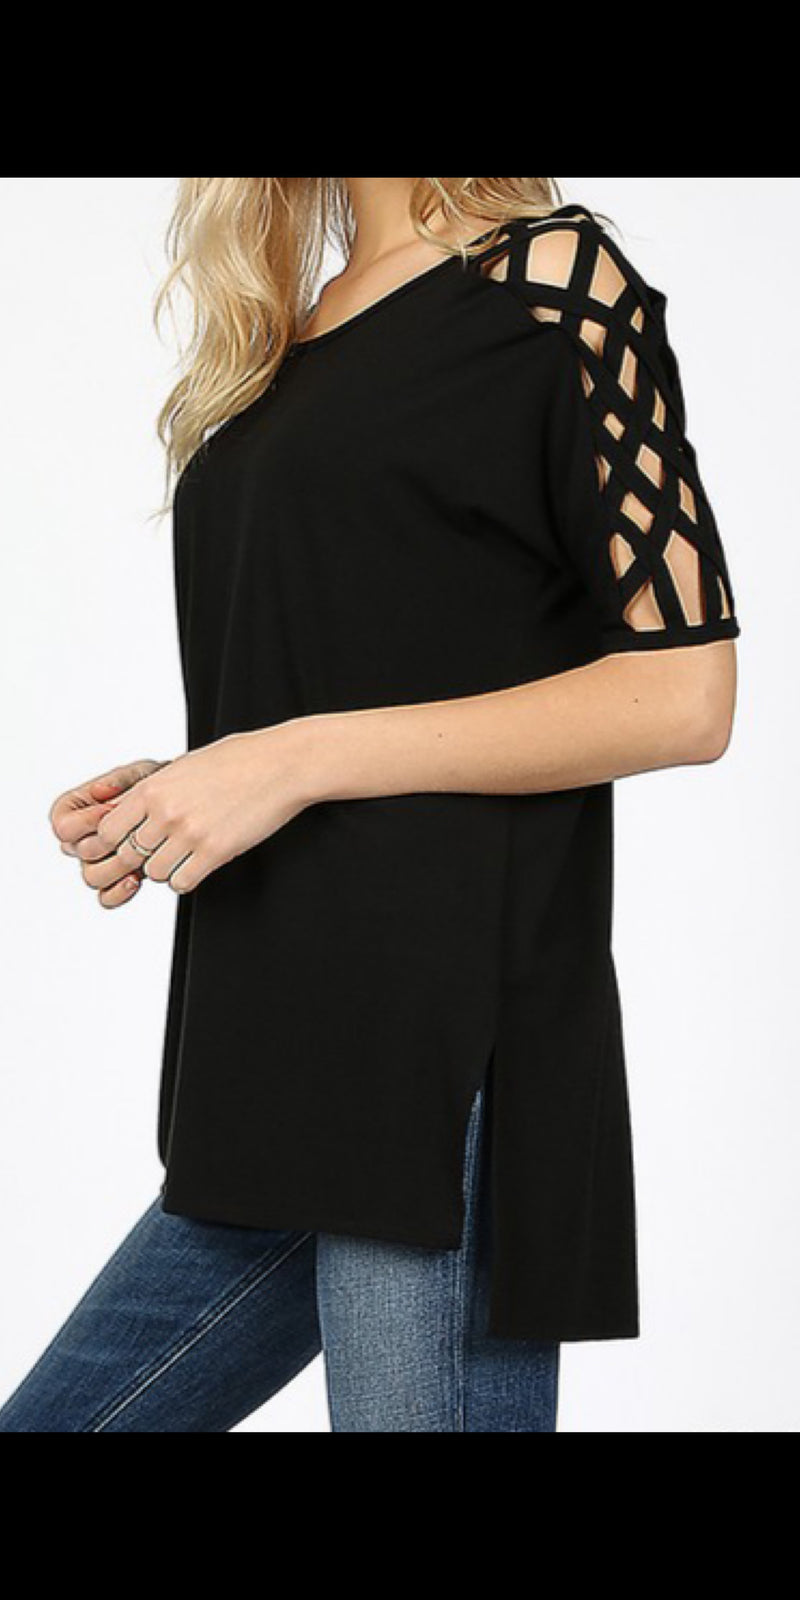 Rosita Black Lace Sleeve Top - Also in Plus Size